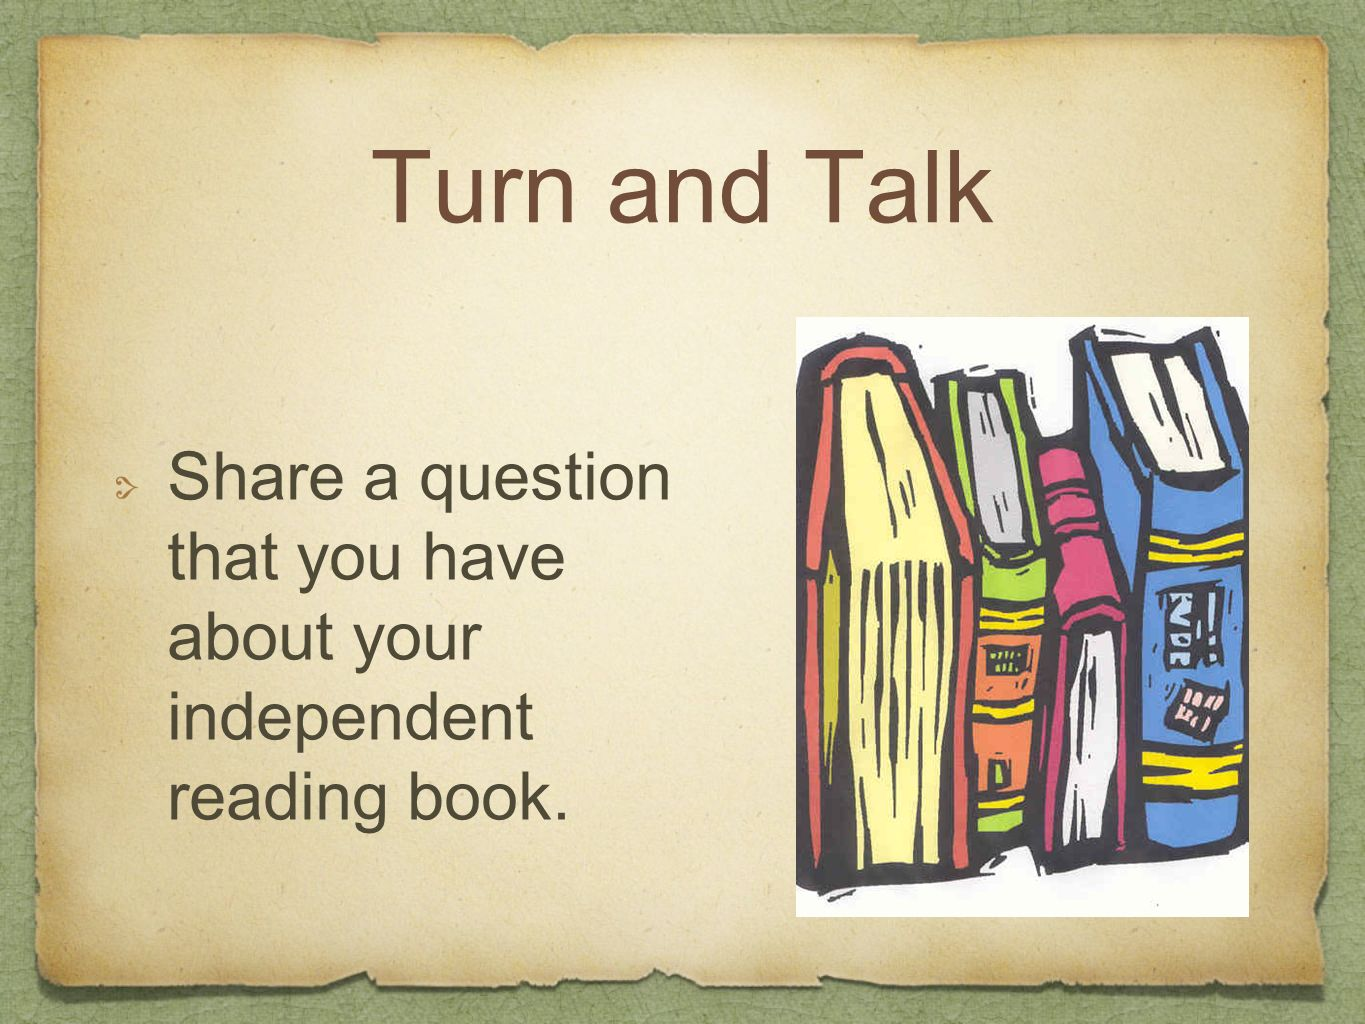 Turn and Talk Share a question that you have about your independent reading book.